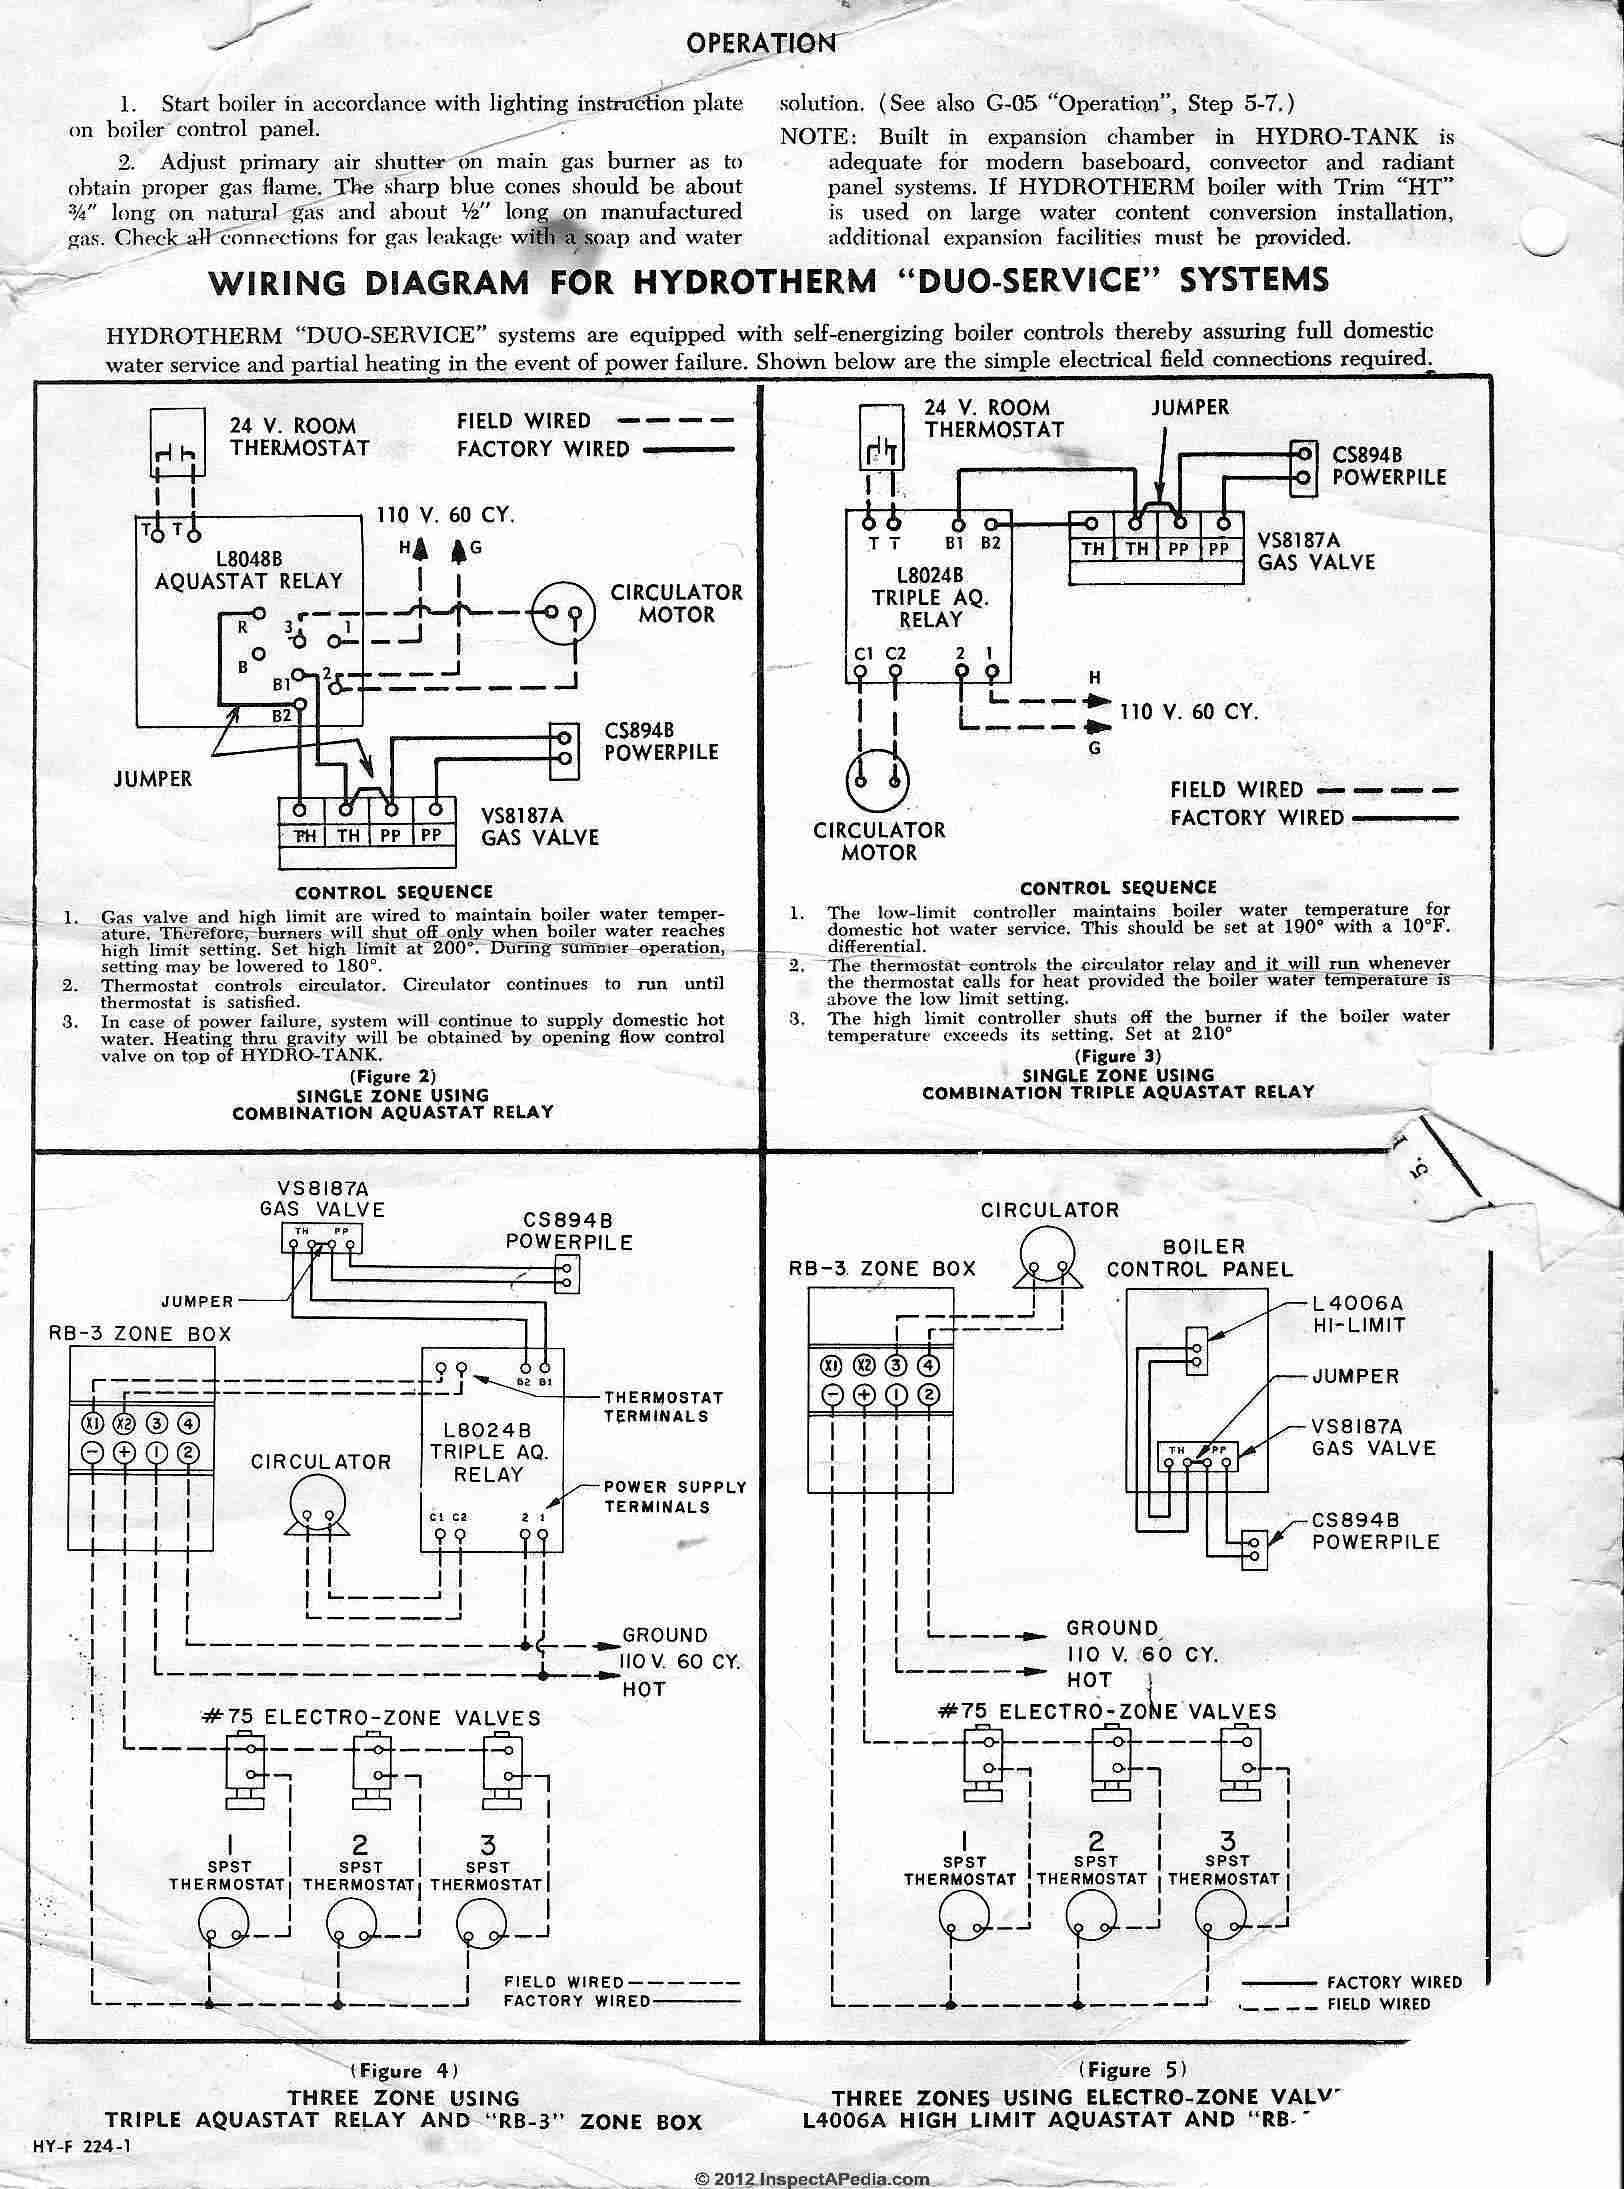 Heating Boiler Aquastat Control Diagnosis Troubleshooting Repair 2009 Mack Wiring Diagrams Blower Honeywell L8024b Instructions